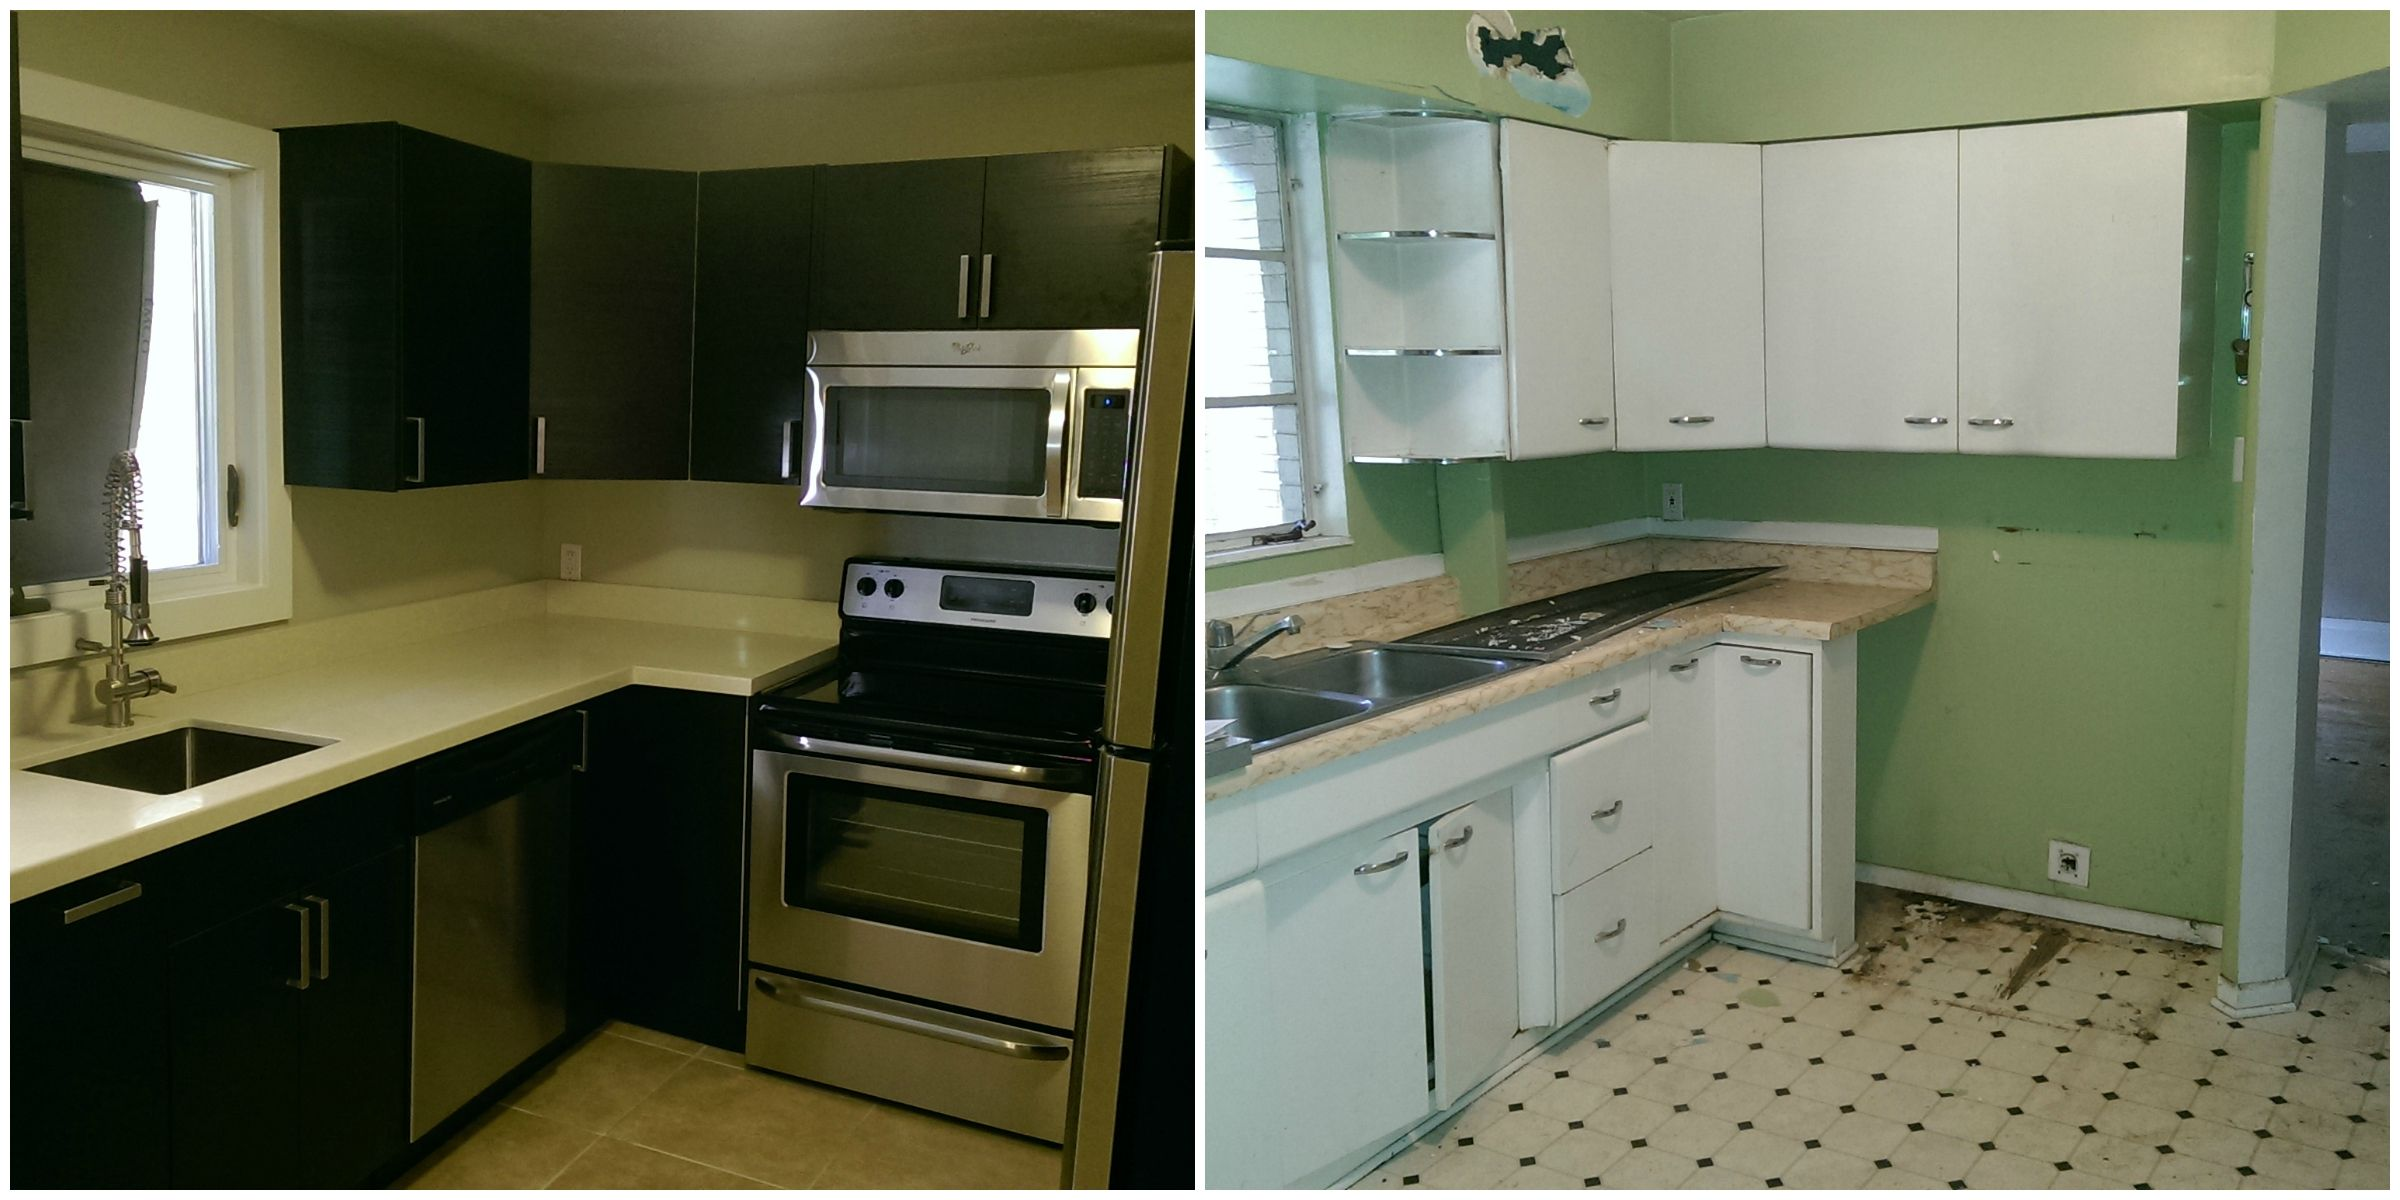 At Your Service Handyman did a beautiful job remodeling